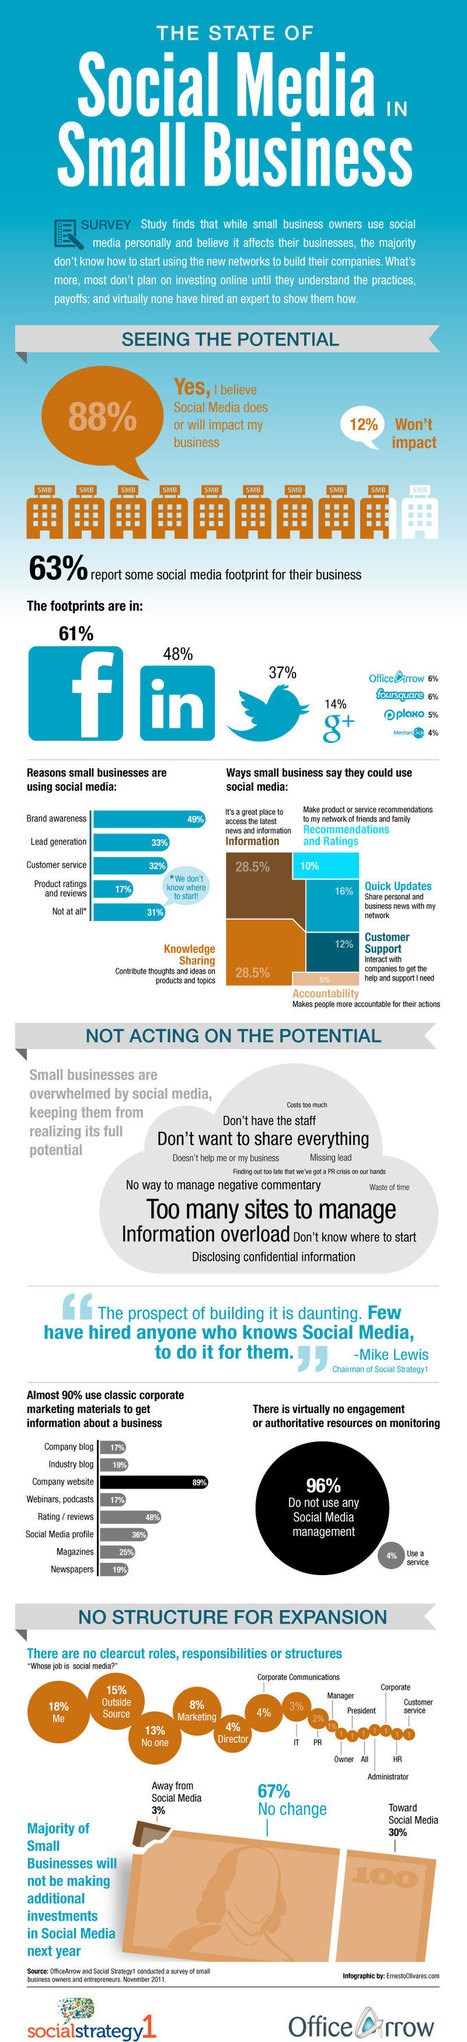 The State Of Social Media In Small Business | Small Business Advisor | Scoop.it